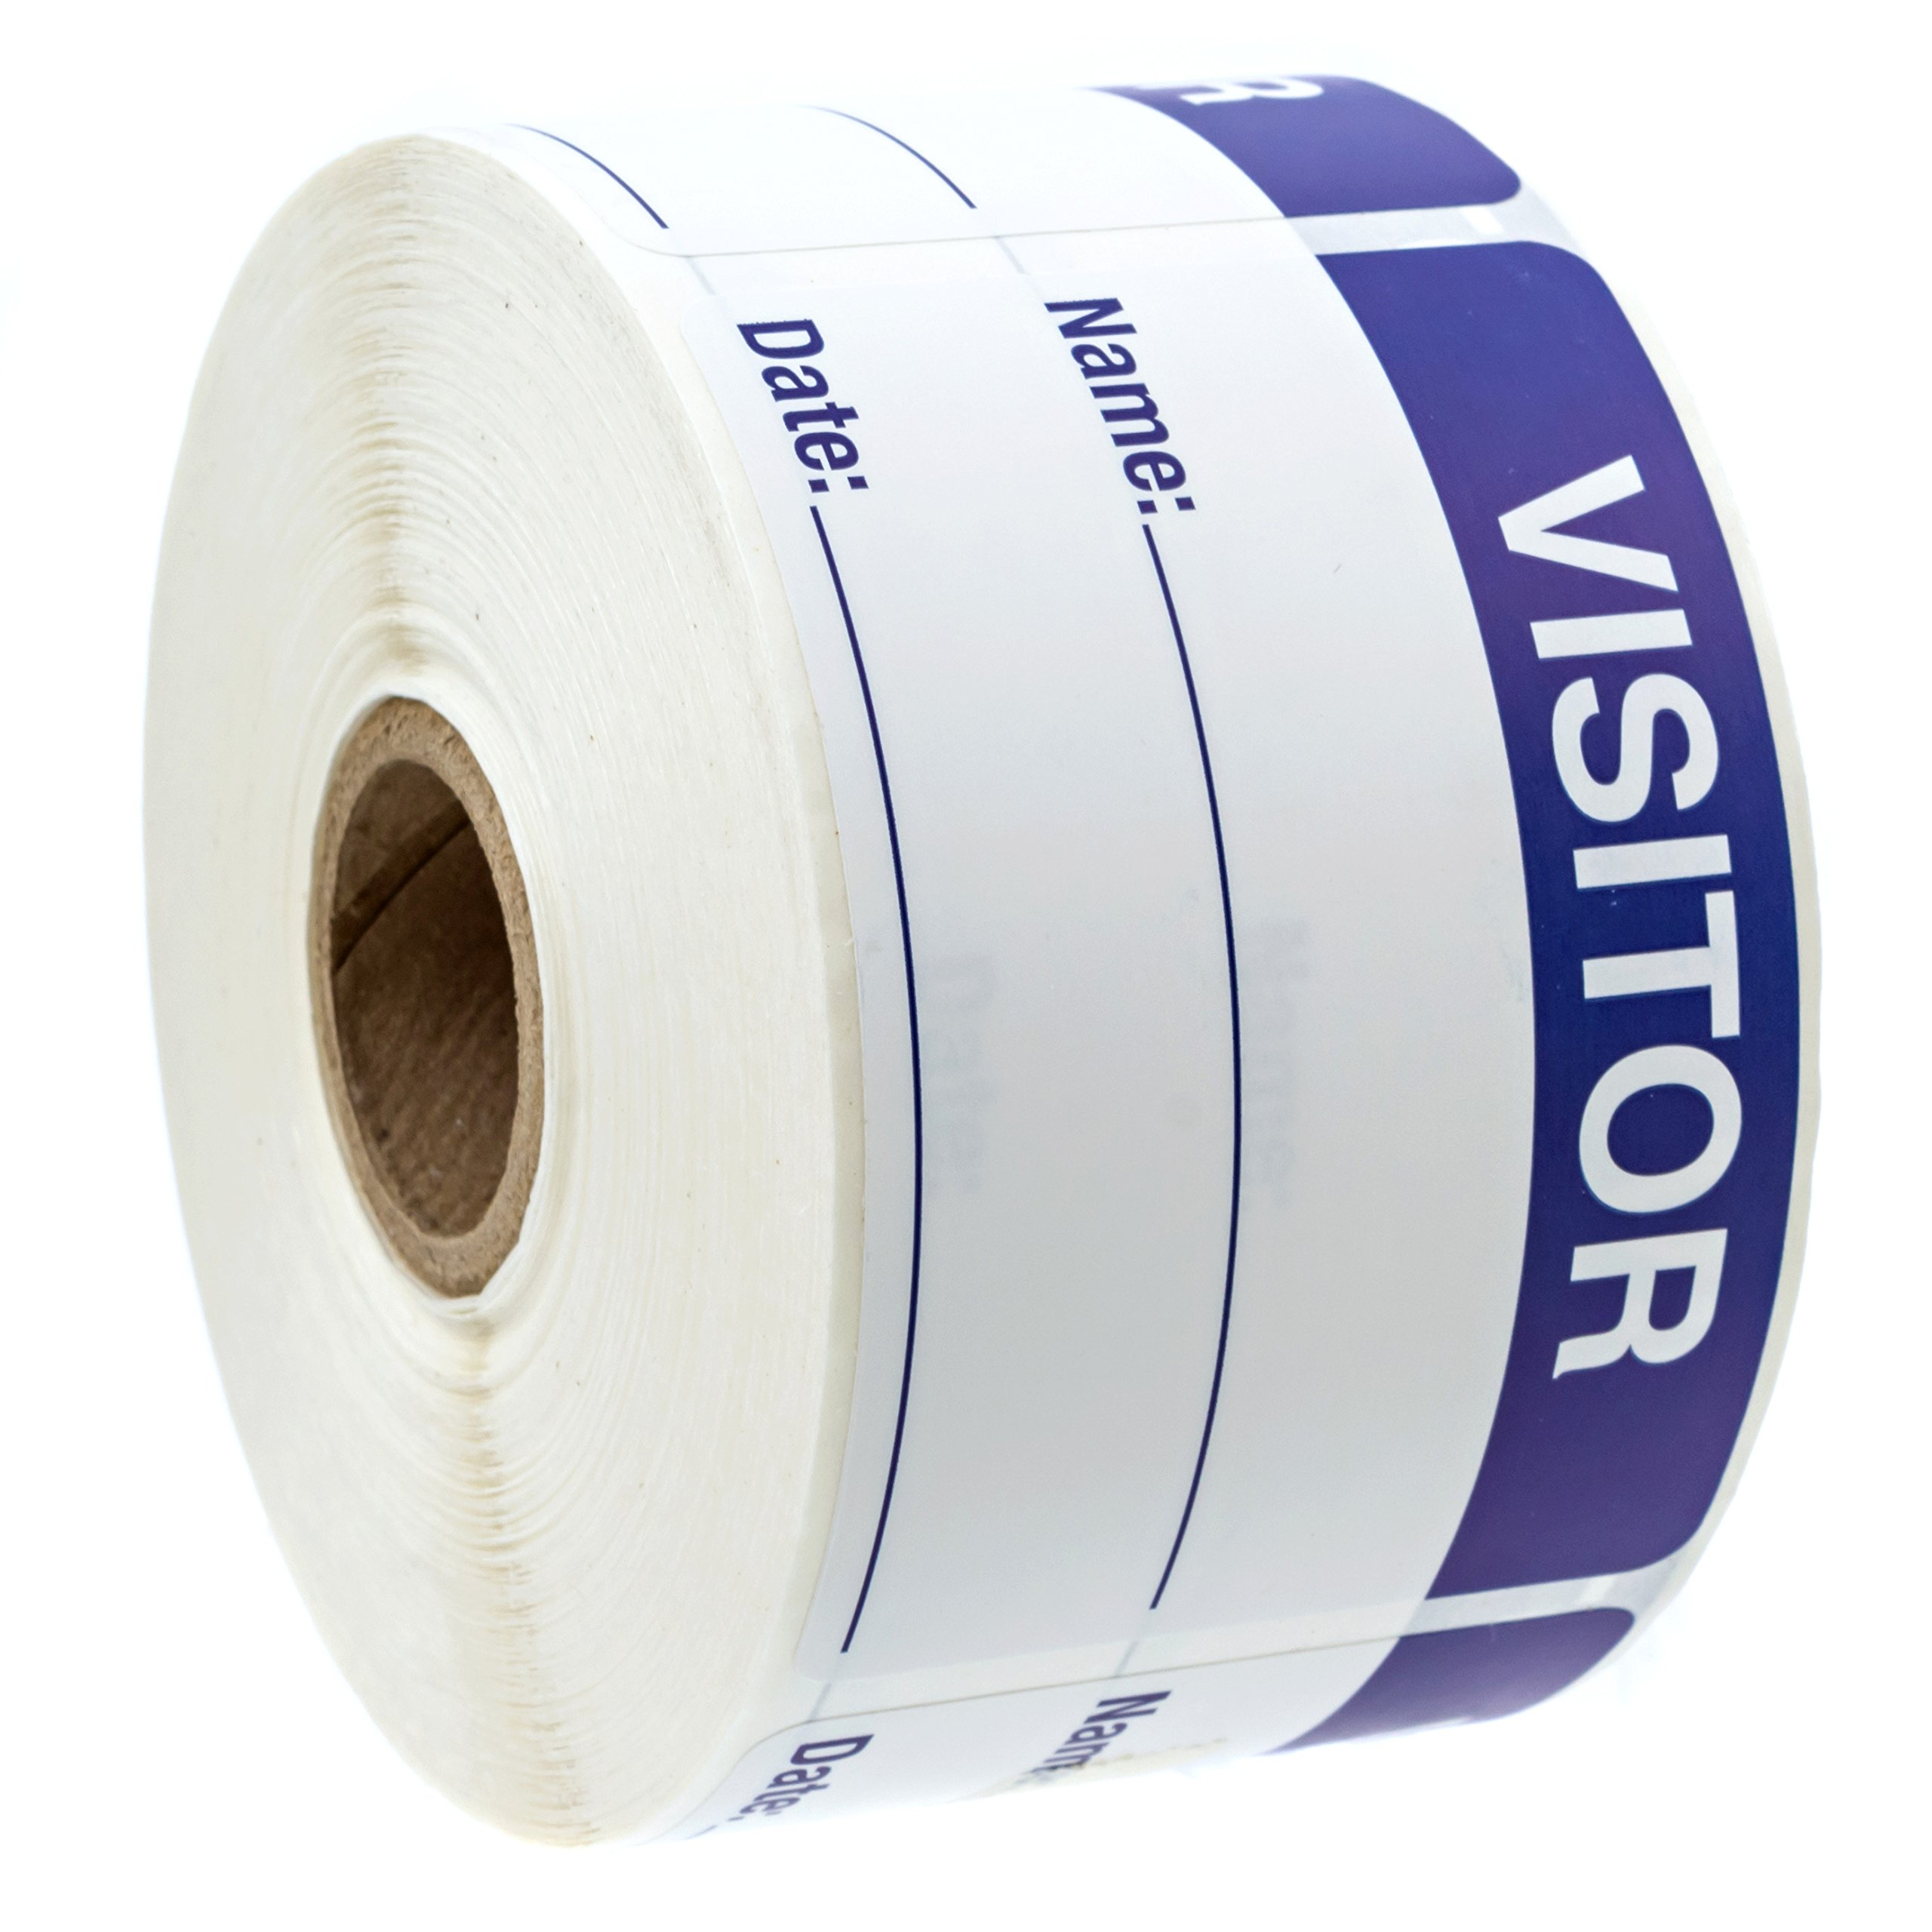 500 Visitor Pass/Identification Labels Stickers/Easy to Write On by SBlabels (Image #3)